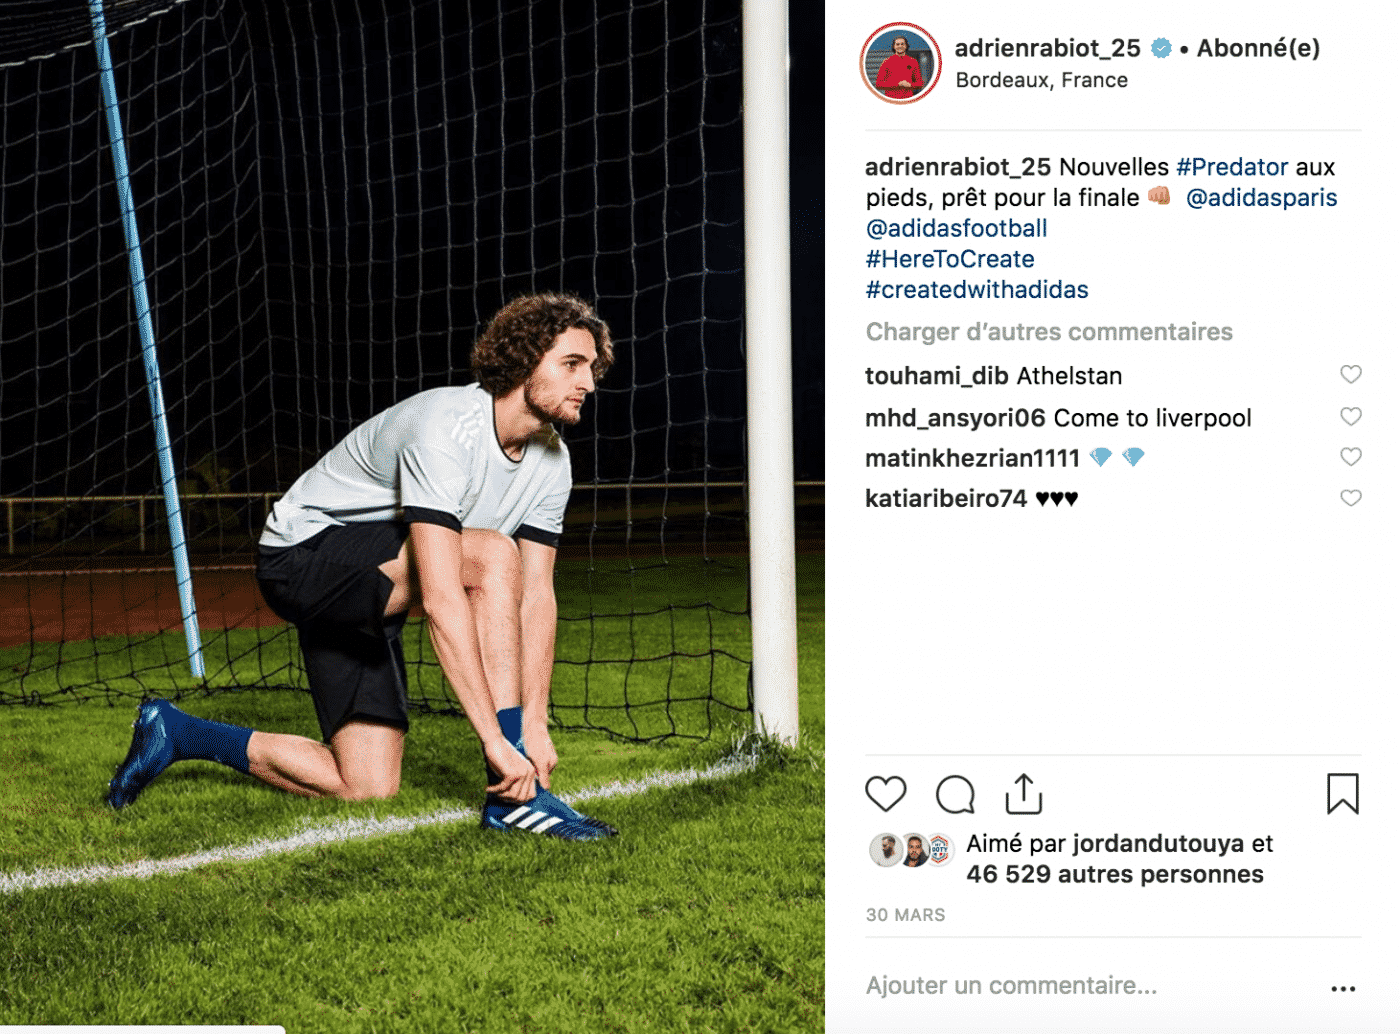 boots-mercato-adrien-rabiot-footpack